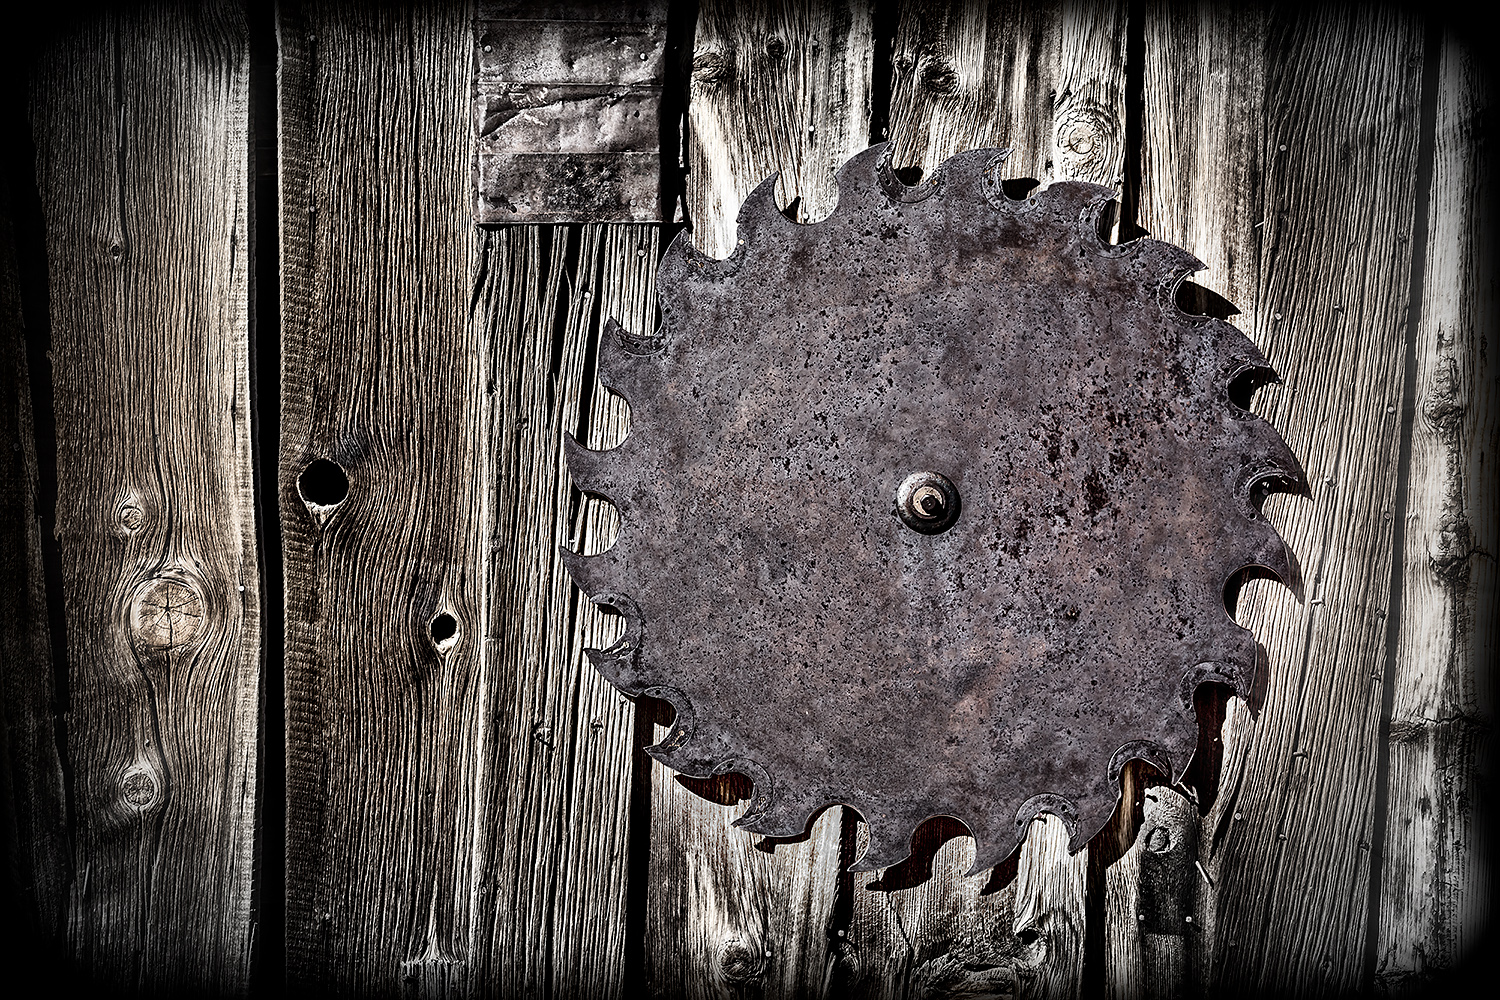 Graphic image of antique saw blade hanging on weathered wood.